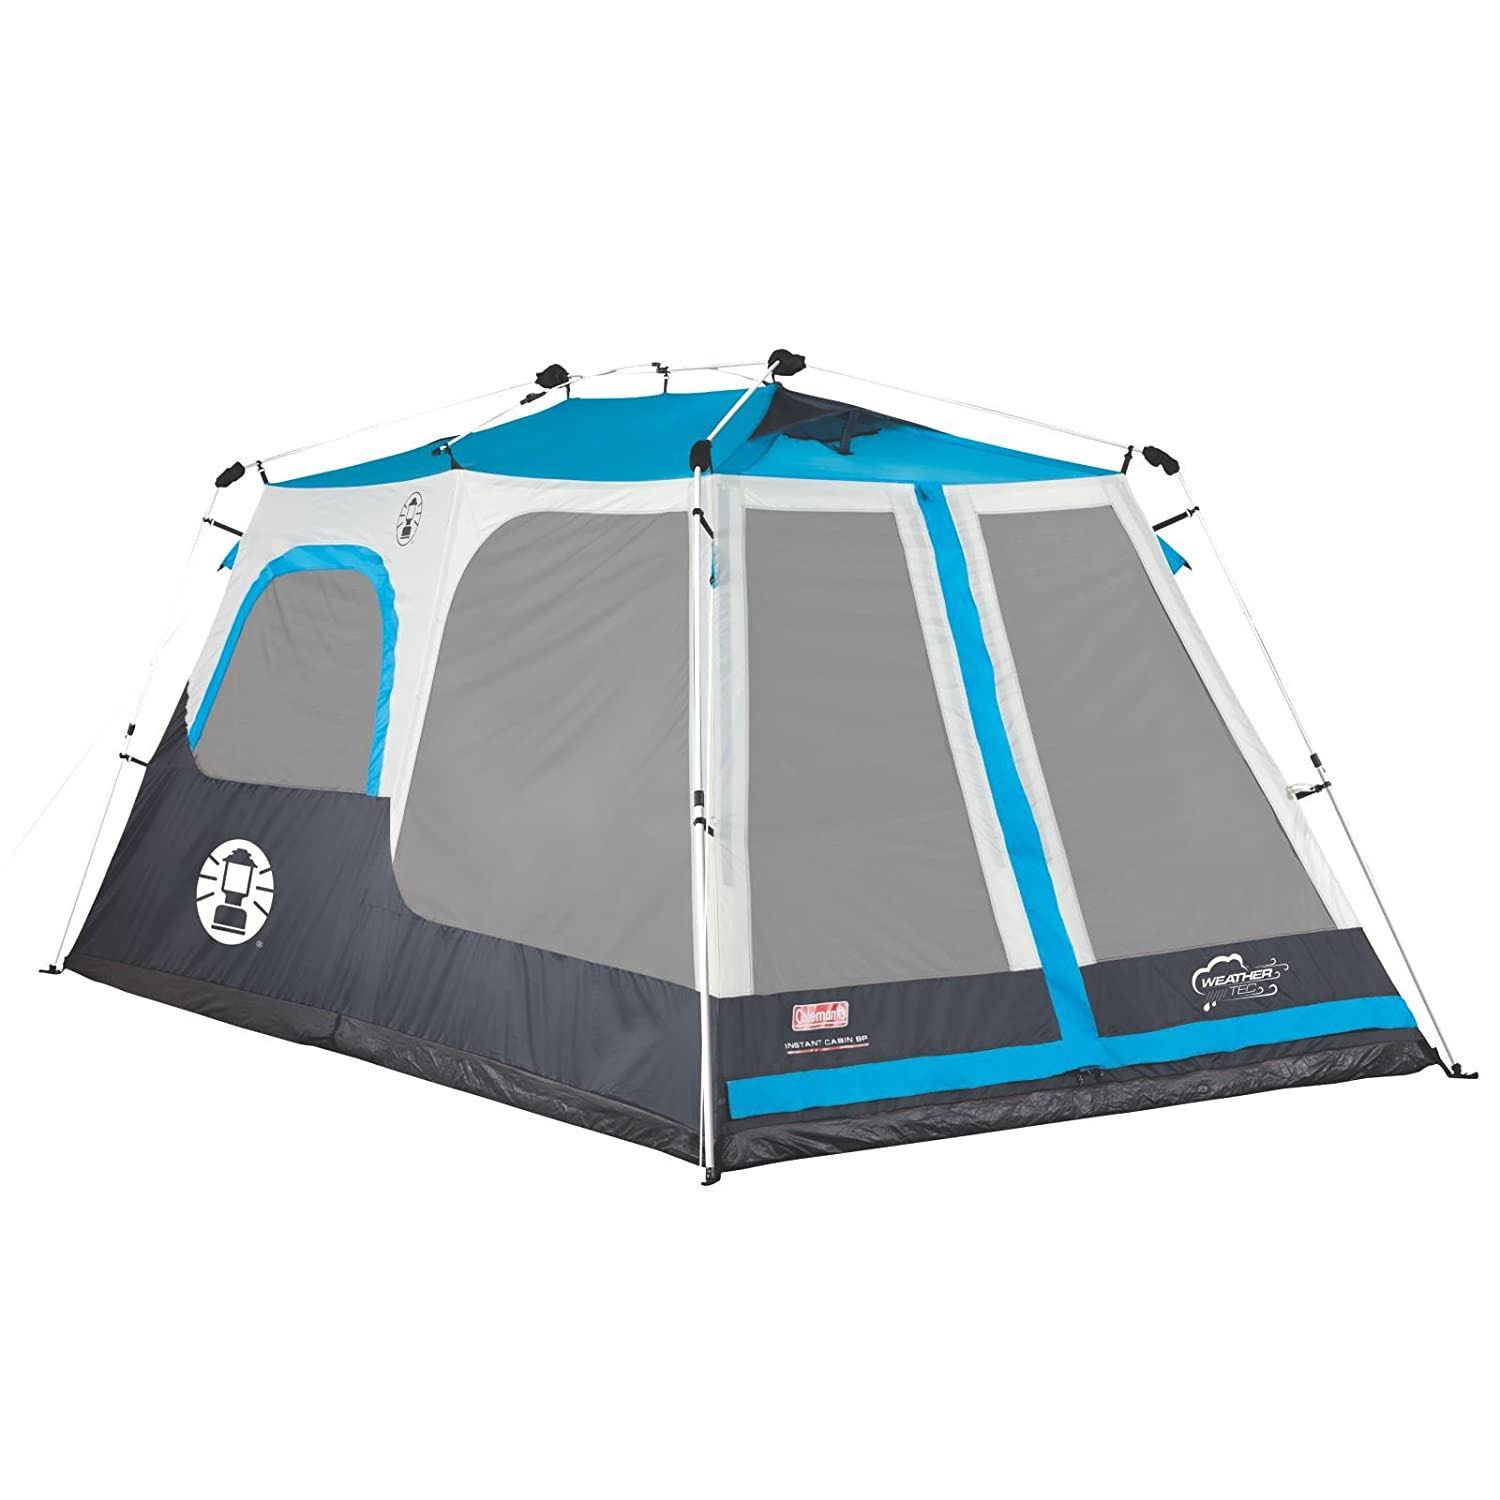 bonus cabins airbeds cabin of bundle queen person tent s picture value instant with ozark trail p